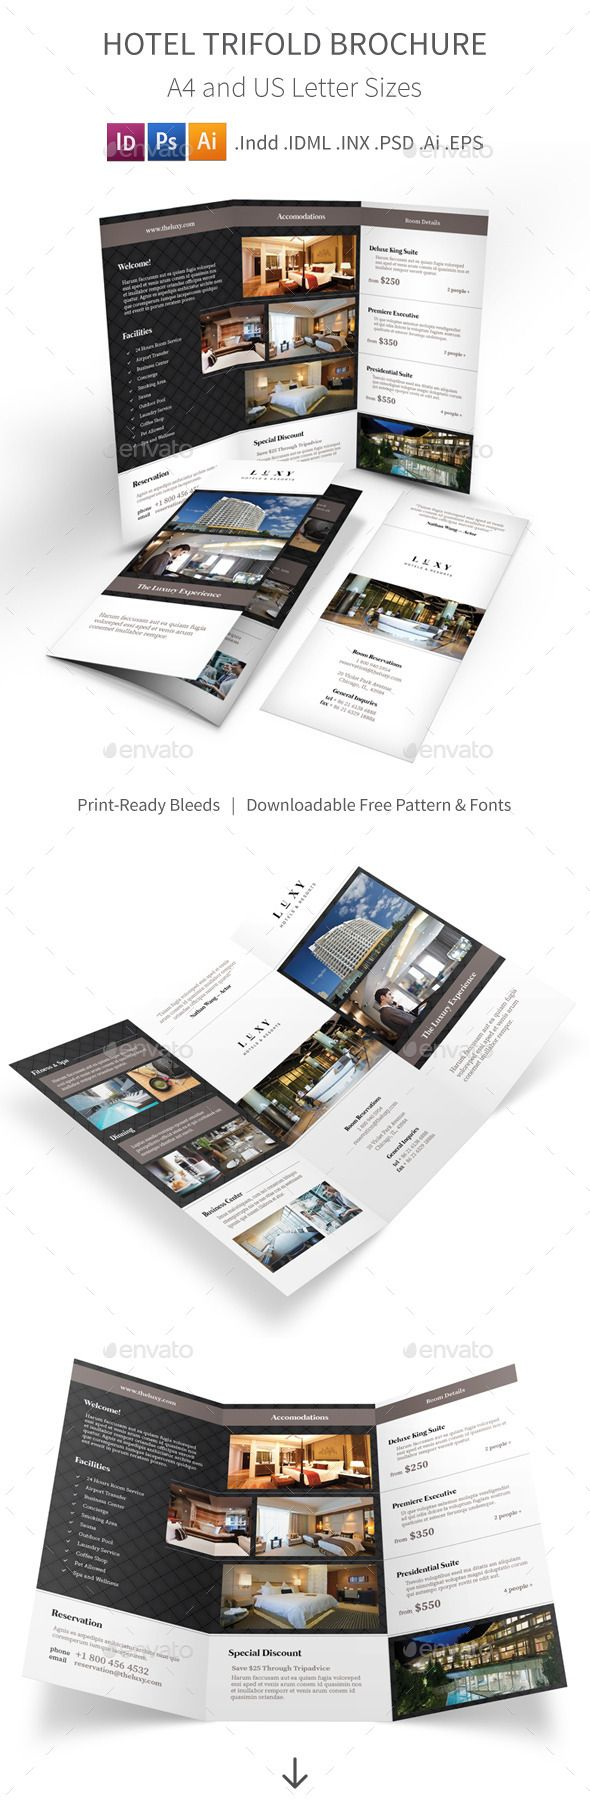 Hotel Trifold Brochure  Brochures Psd Templates And Template